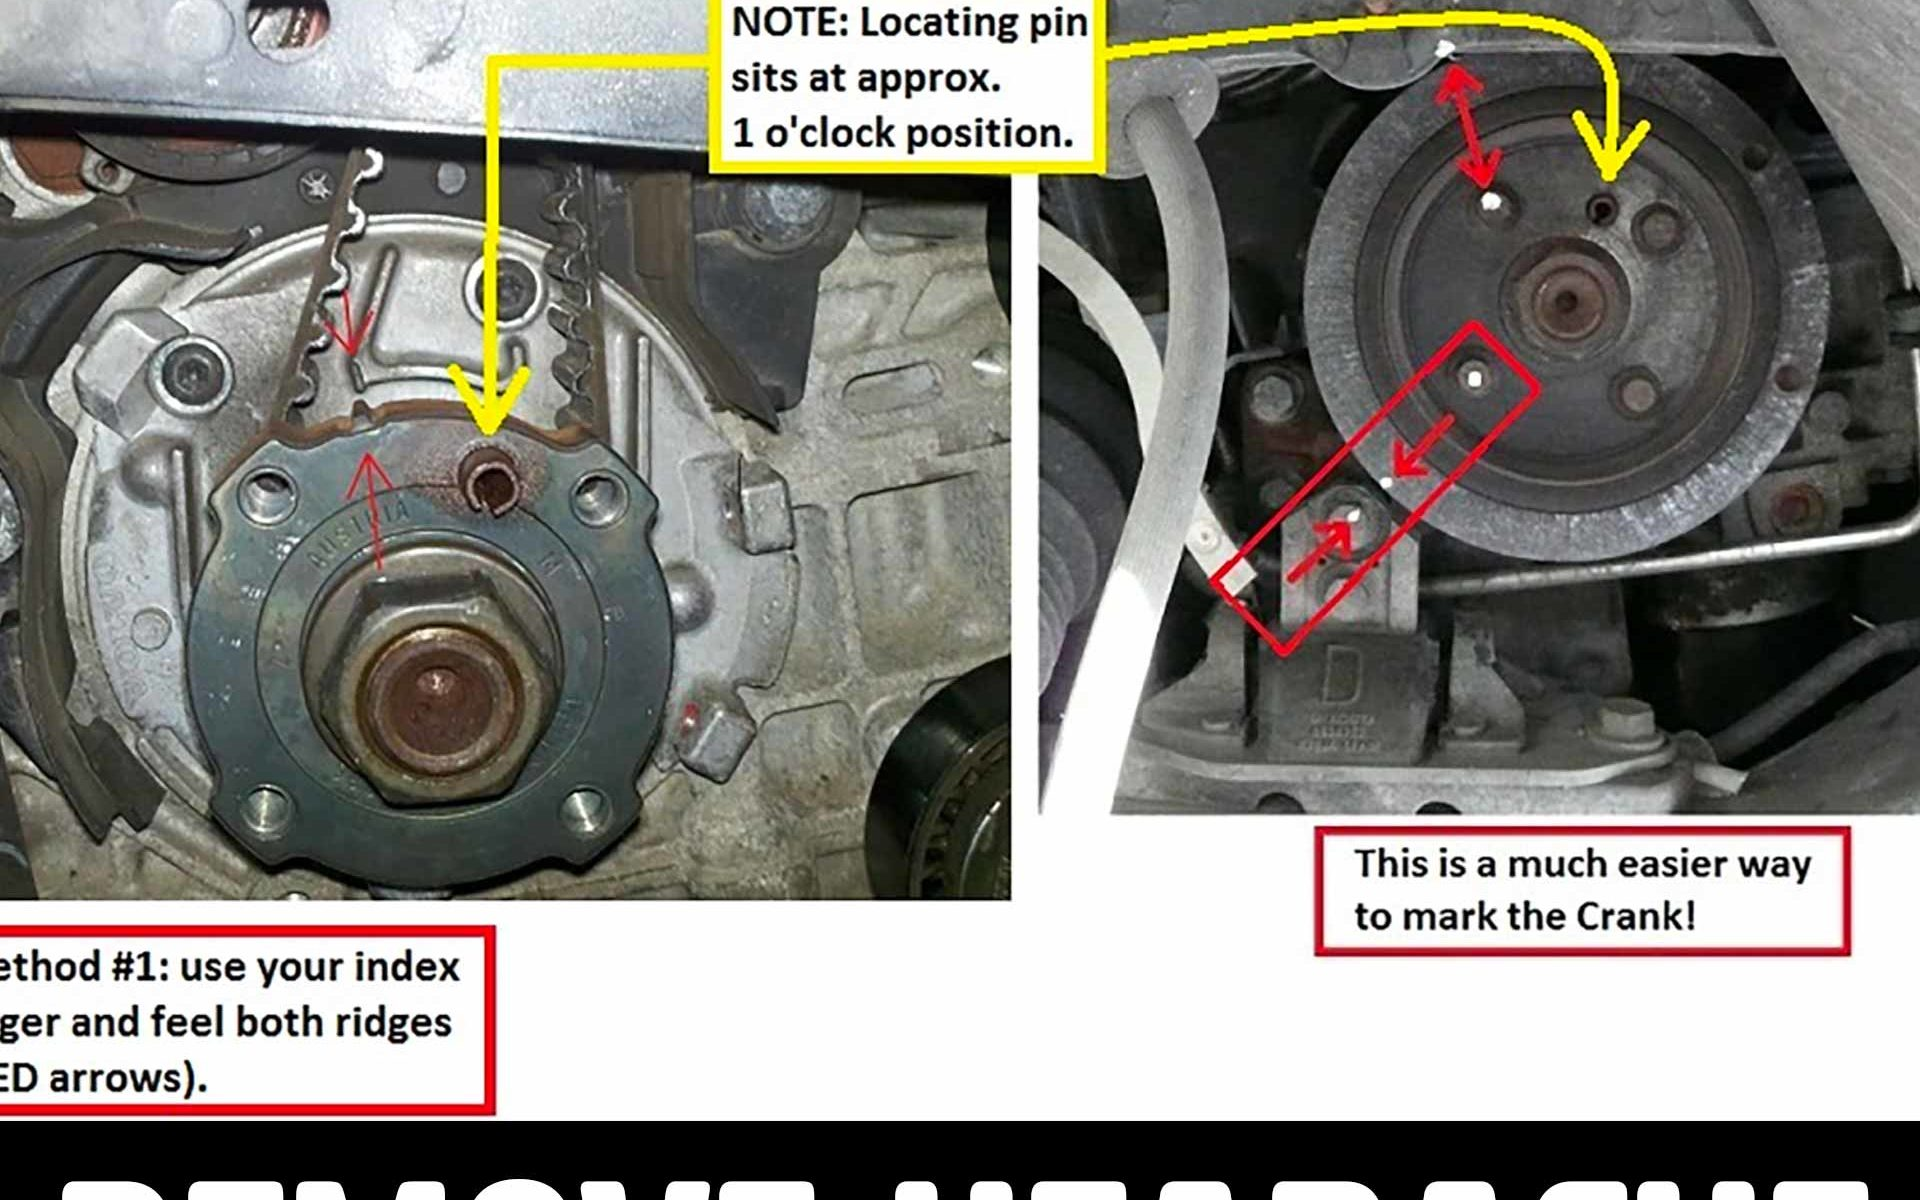 hight resolution of crank marks the easy way to line them up for timing belt